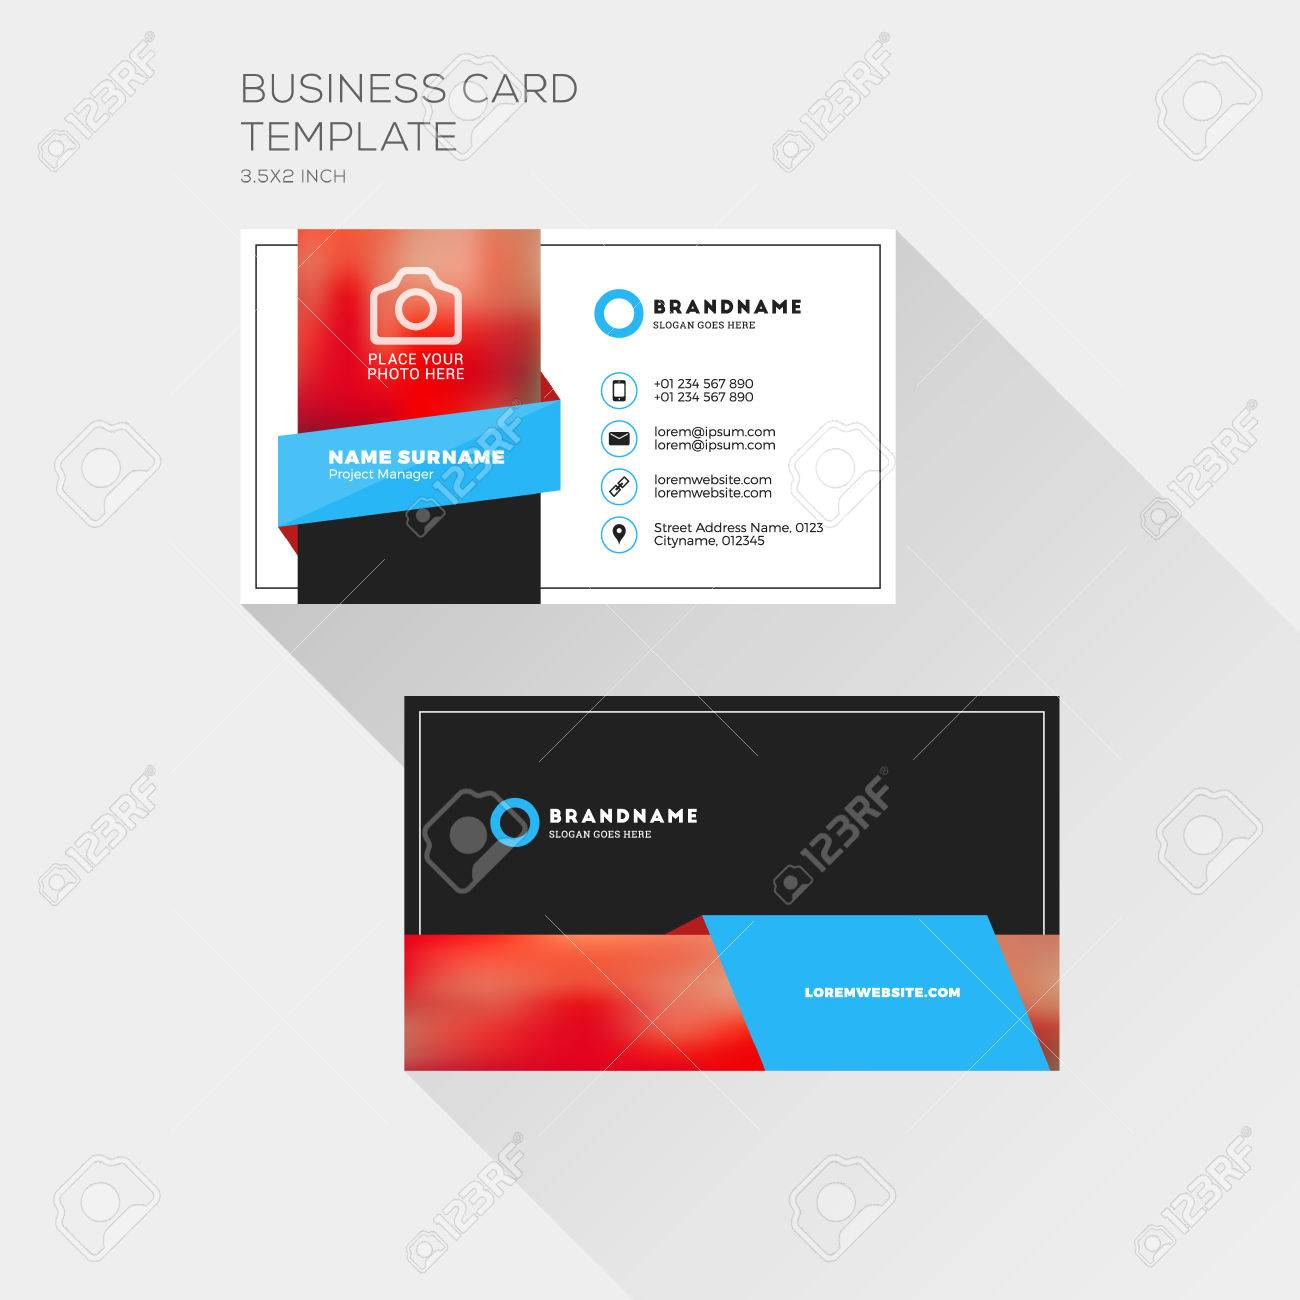 corporate business card print template personal visiting card with company logo clean flat design - Business Card Printing Company